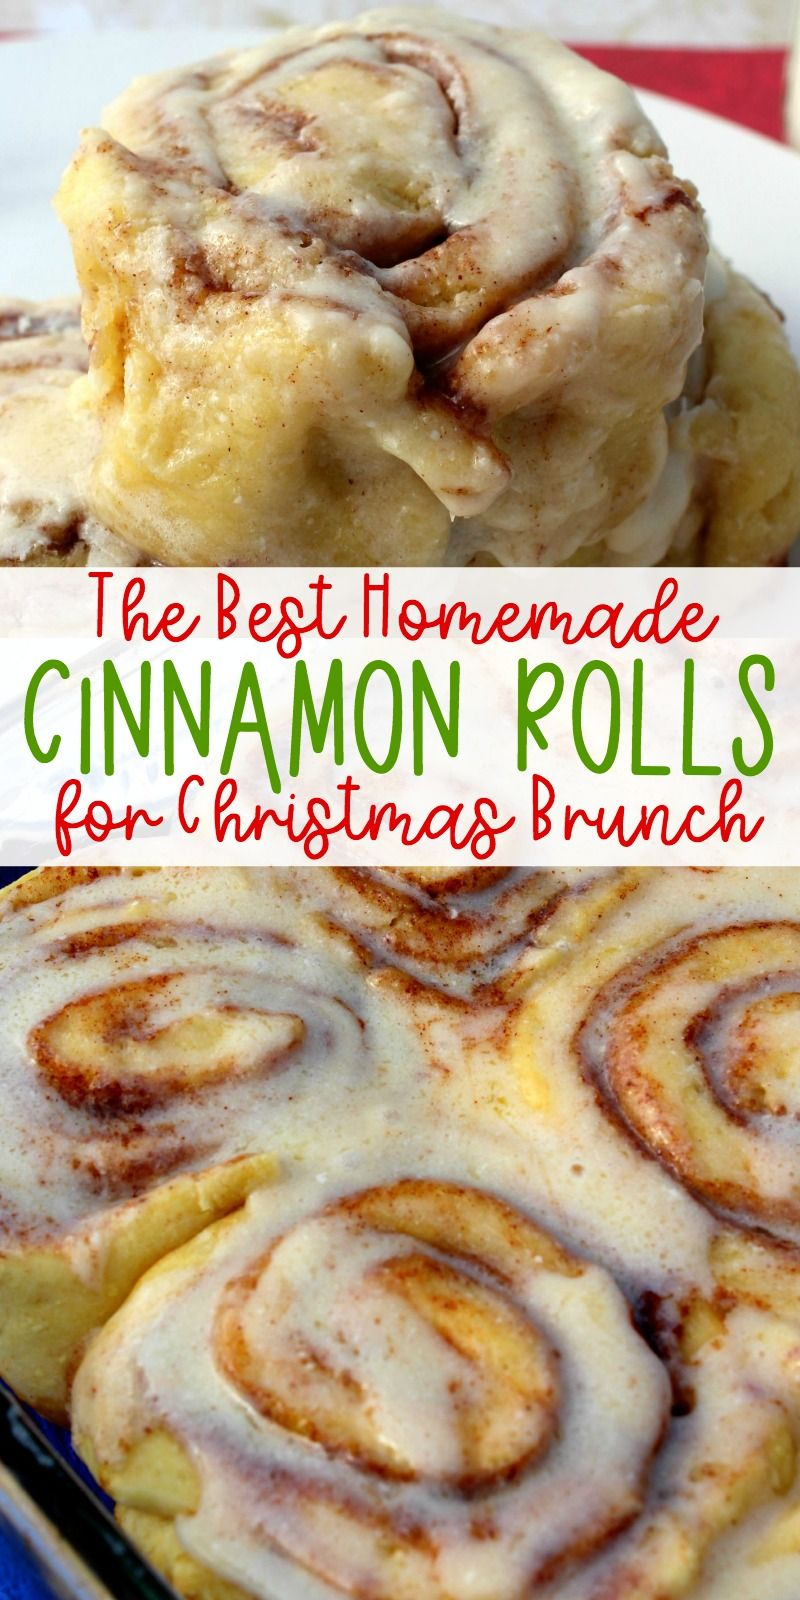 Photo of Homemade Cinnamon Rolls for Christmas Brunch